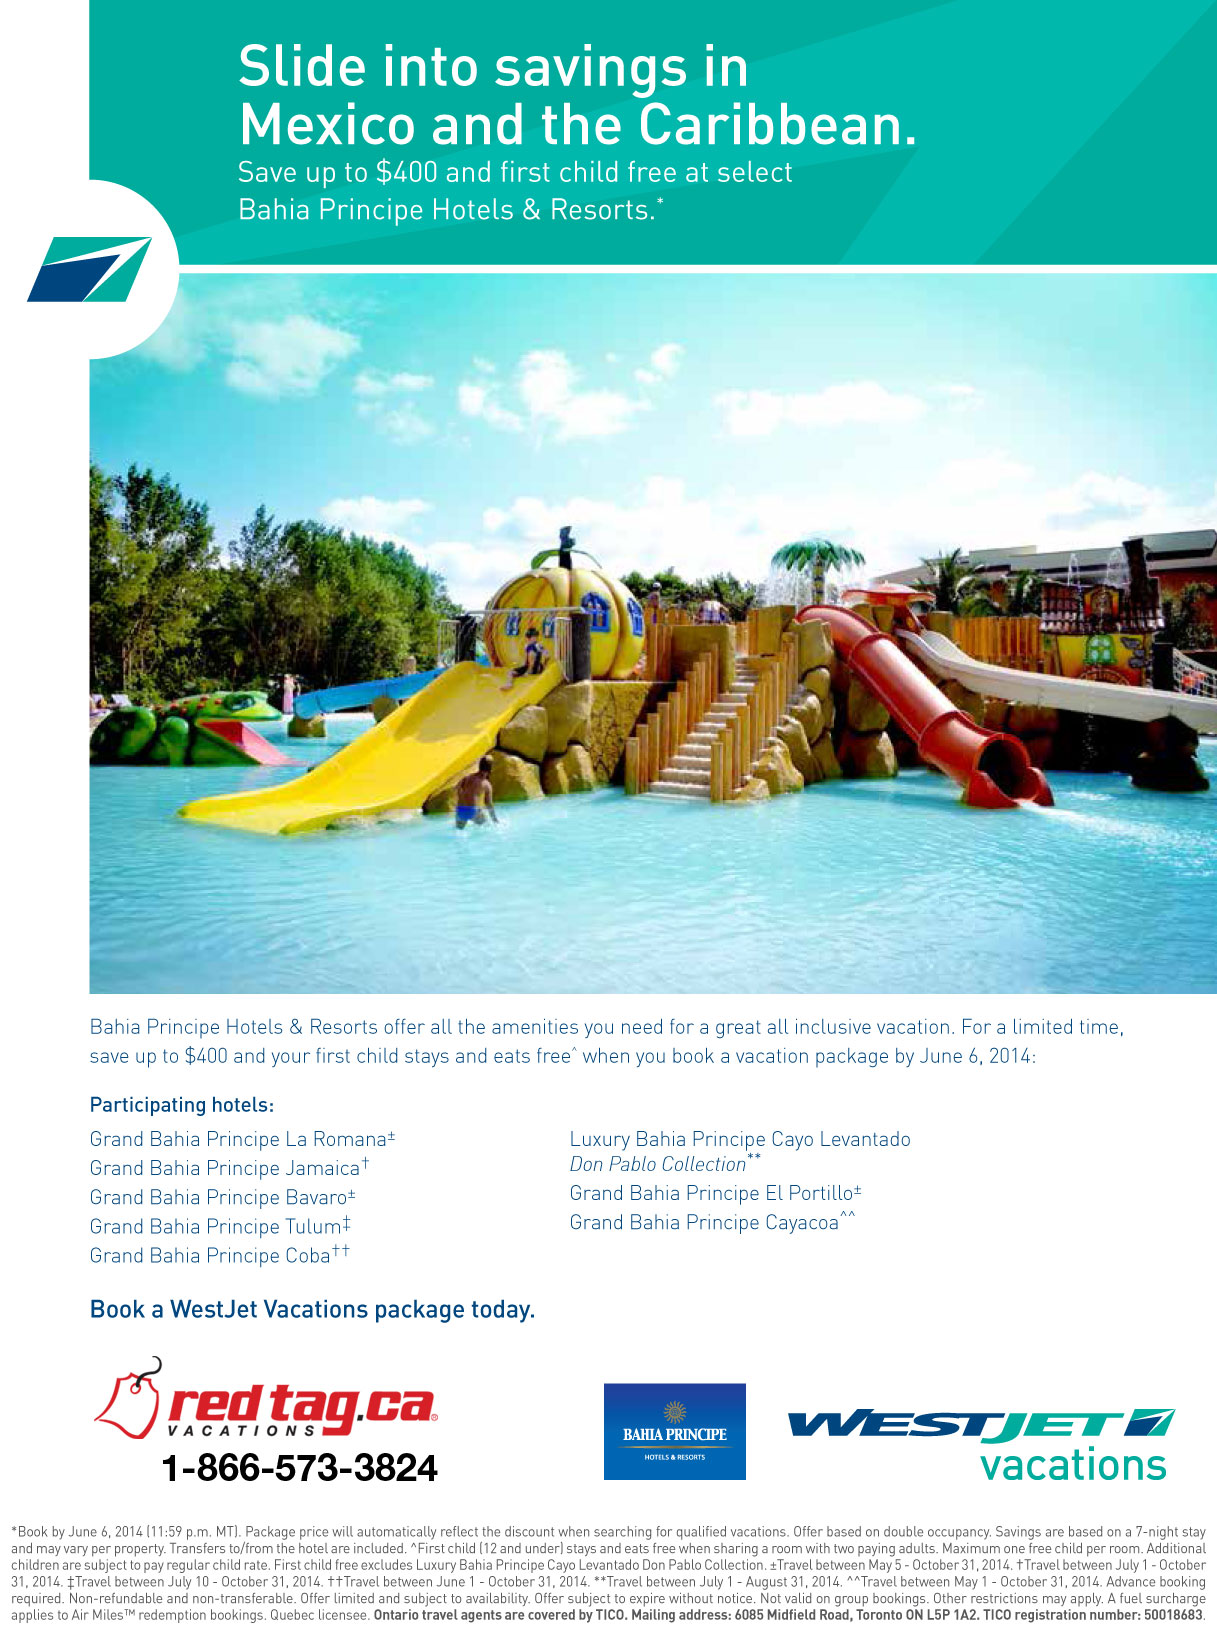 How to Use WestJet Coupons The best way to save at West Jet is to book your accommodations under one of their featured promotions. Doing so can save you up to 50% and more off regular prices.